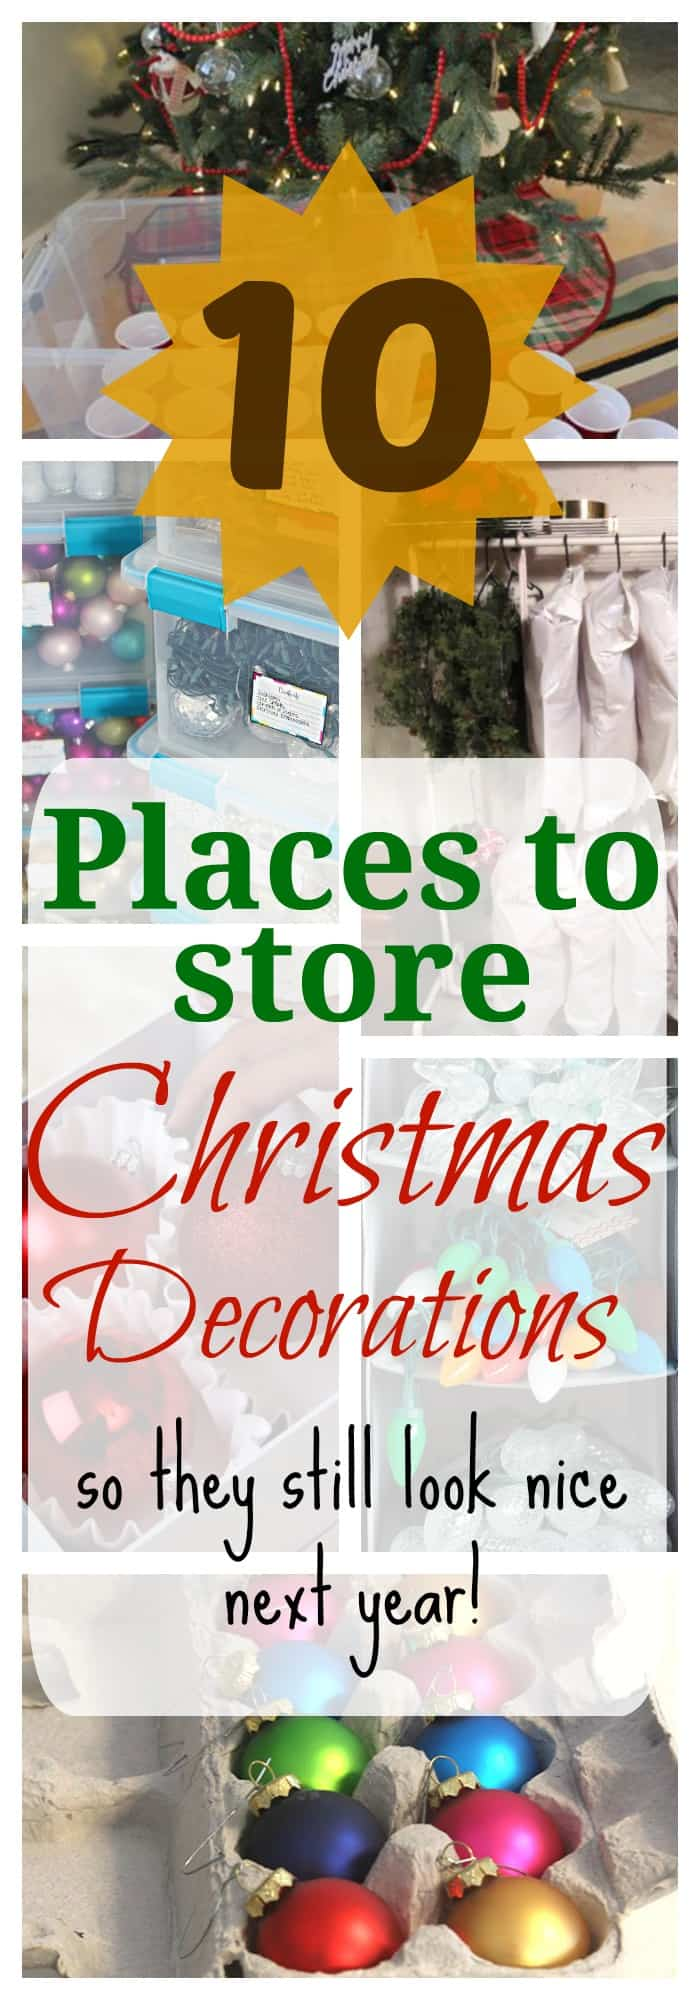 places to store christmas decorations so they still look nice next year - Organizing Christmas Decorations